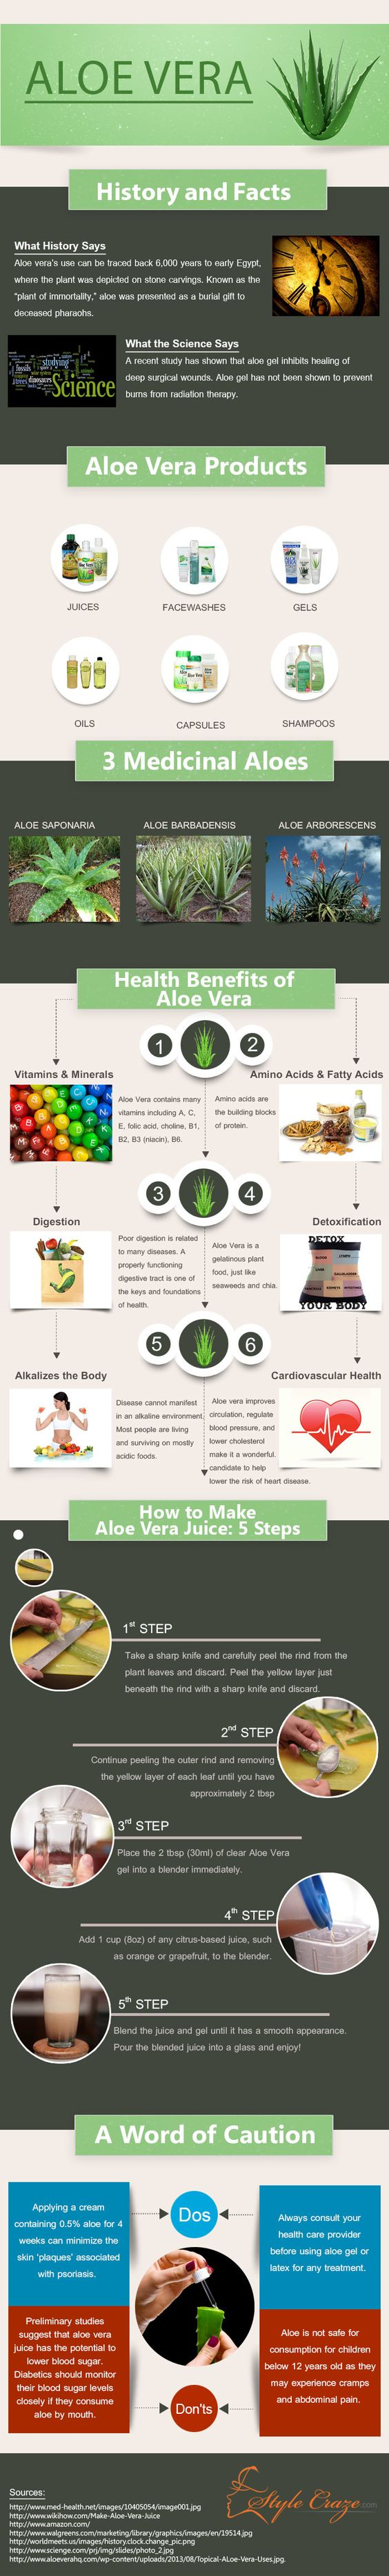 Aloe Vera health benefits + Juice recipe [Infographic] | ecogreenlove